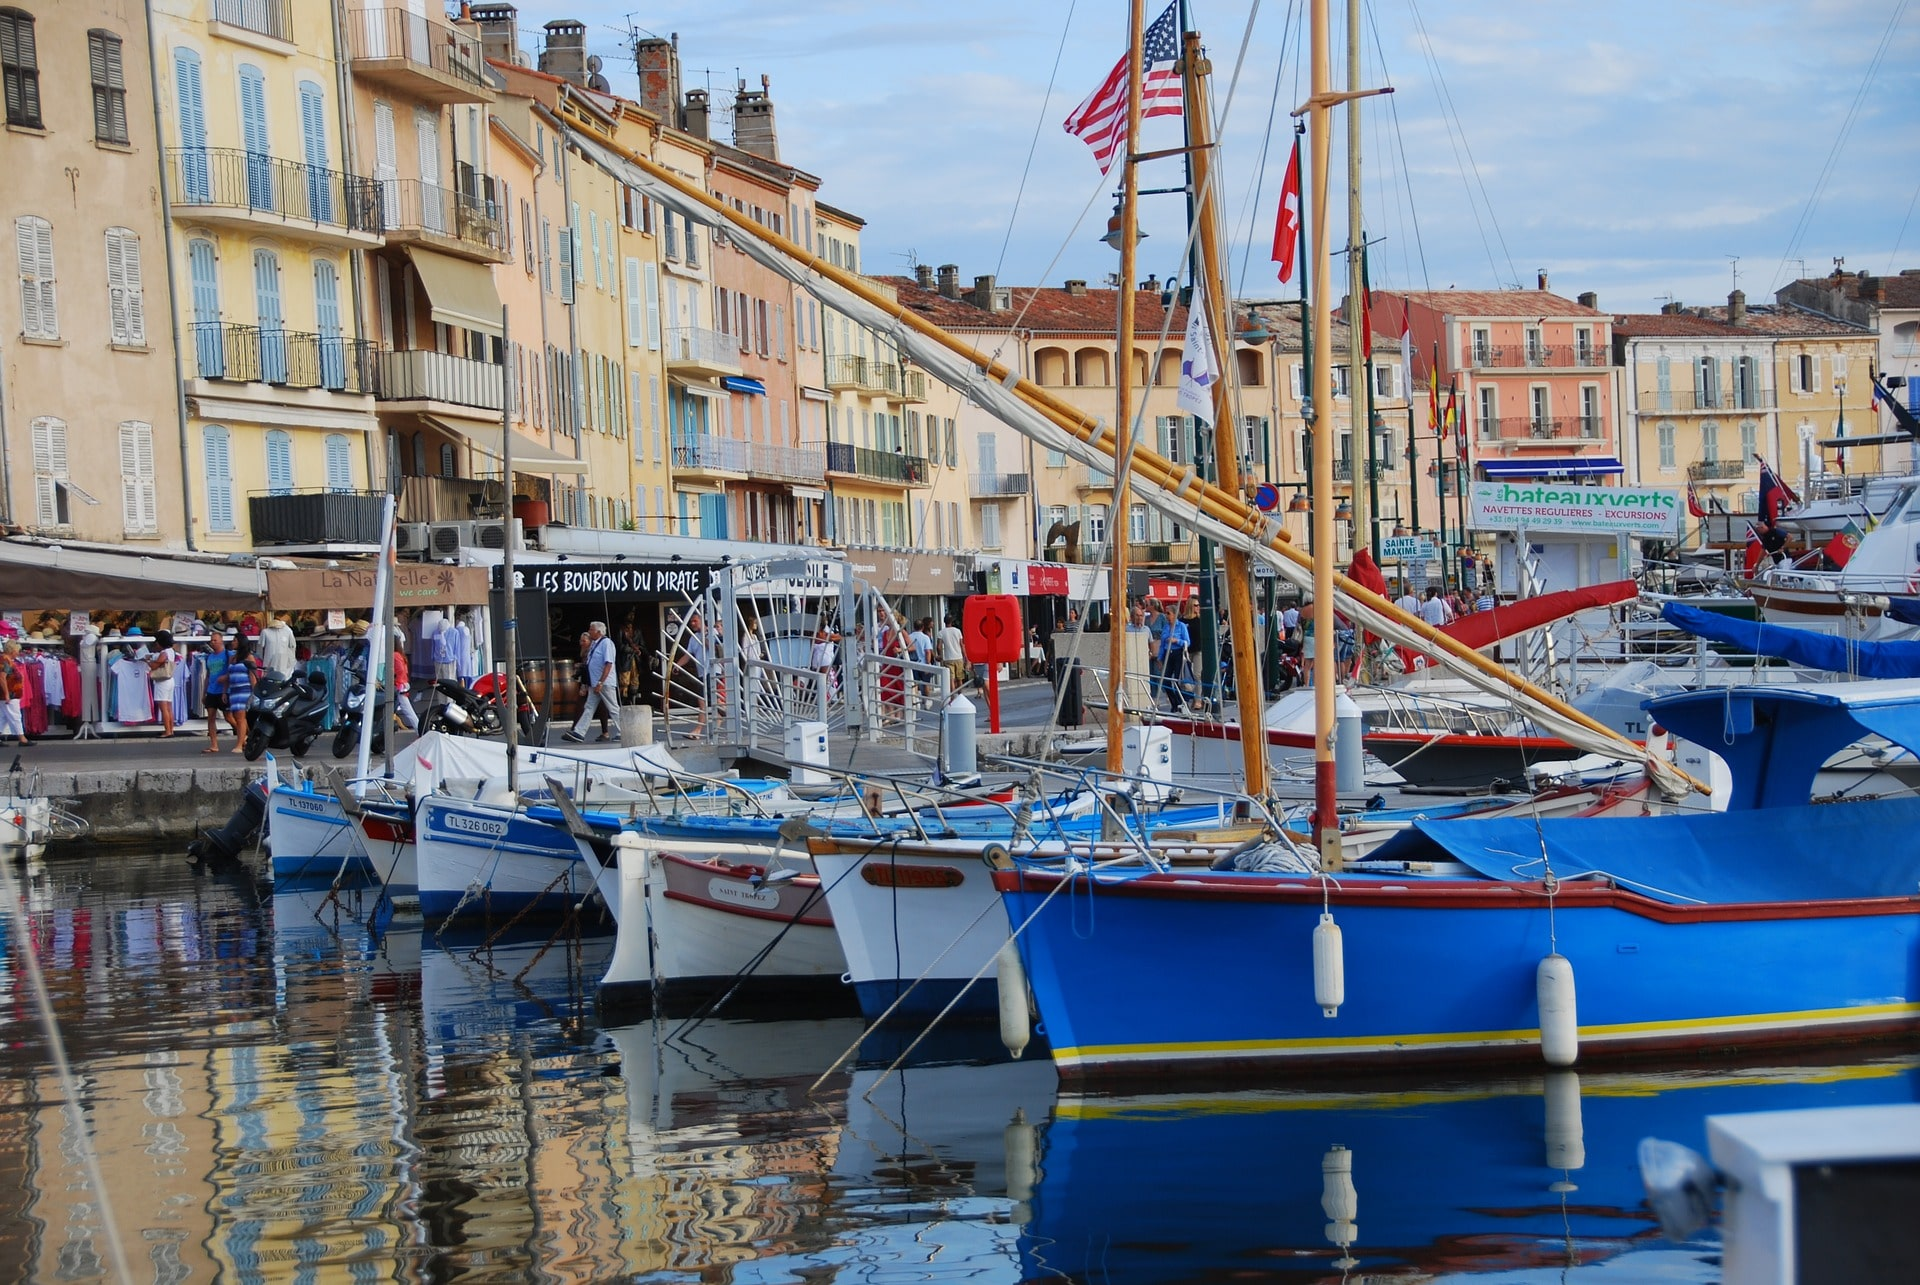 Saint-Tropez is one of the best places to visit in France